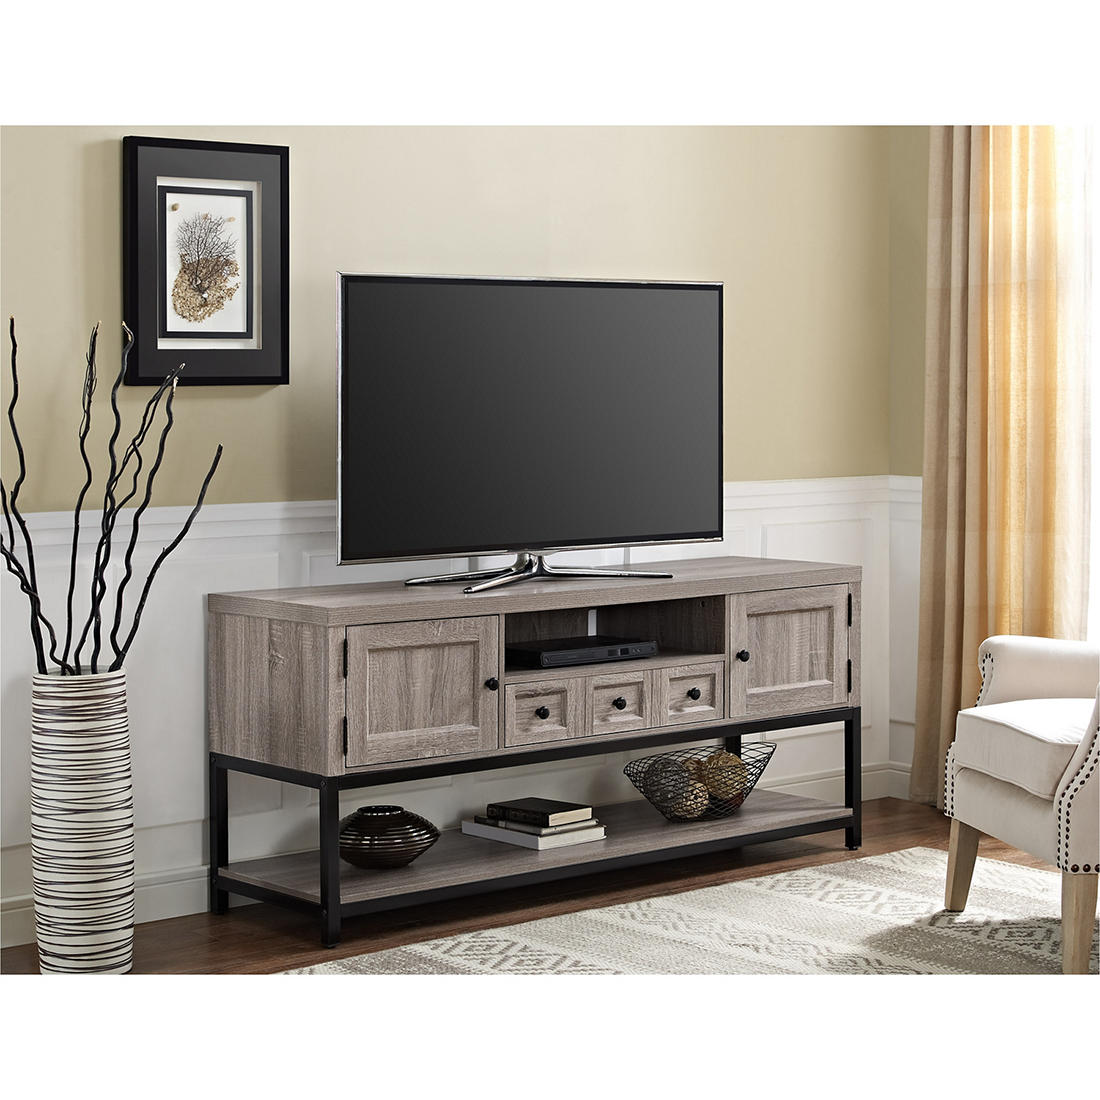 Strange Ameriwood Home Barrett 64 Multipurpose Tv Console Weathered Oak Interior Design Ideas Ghosoteloinfo